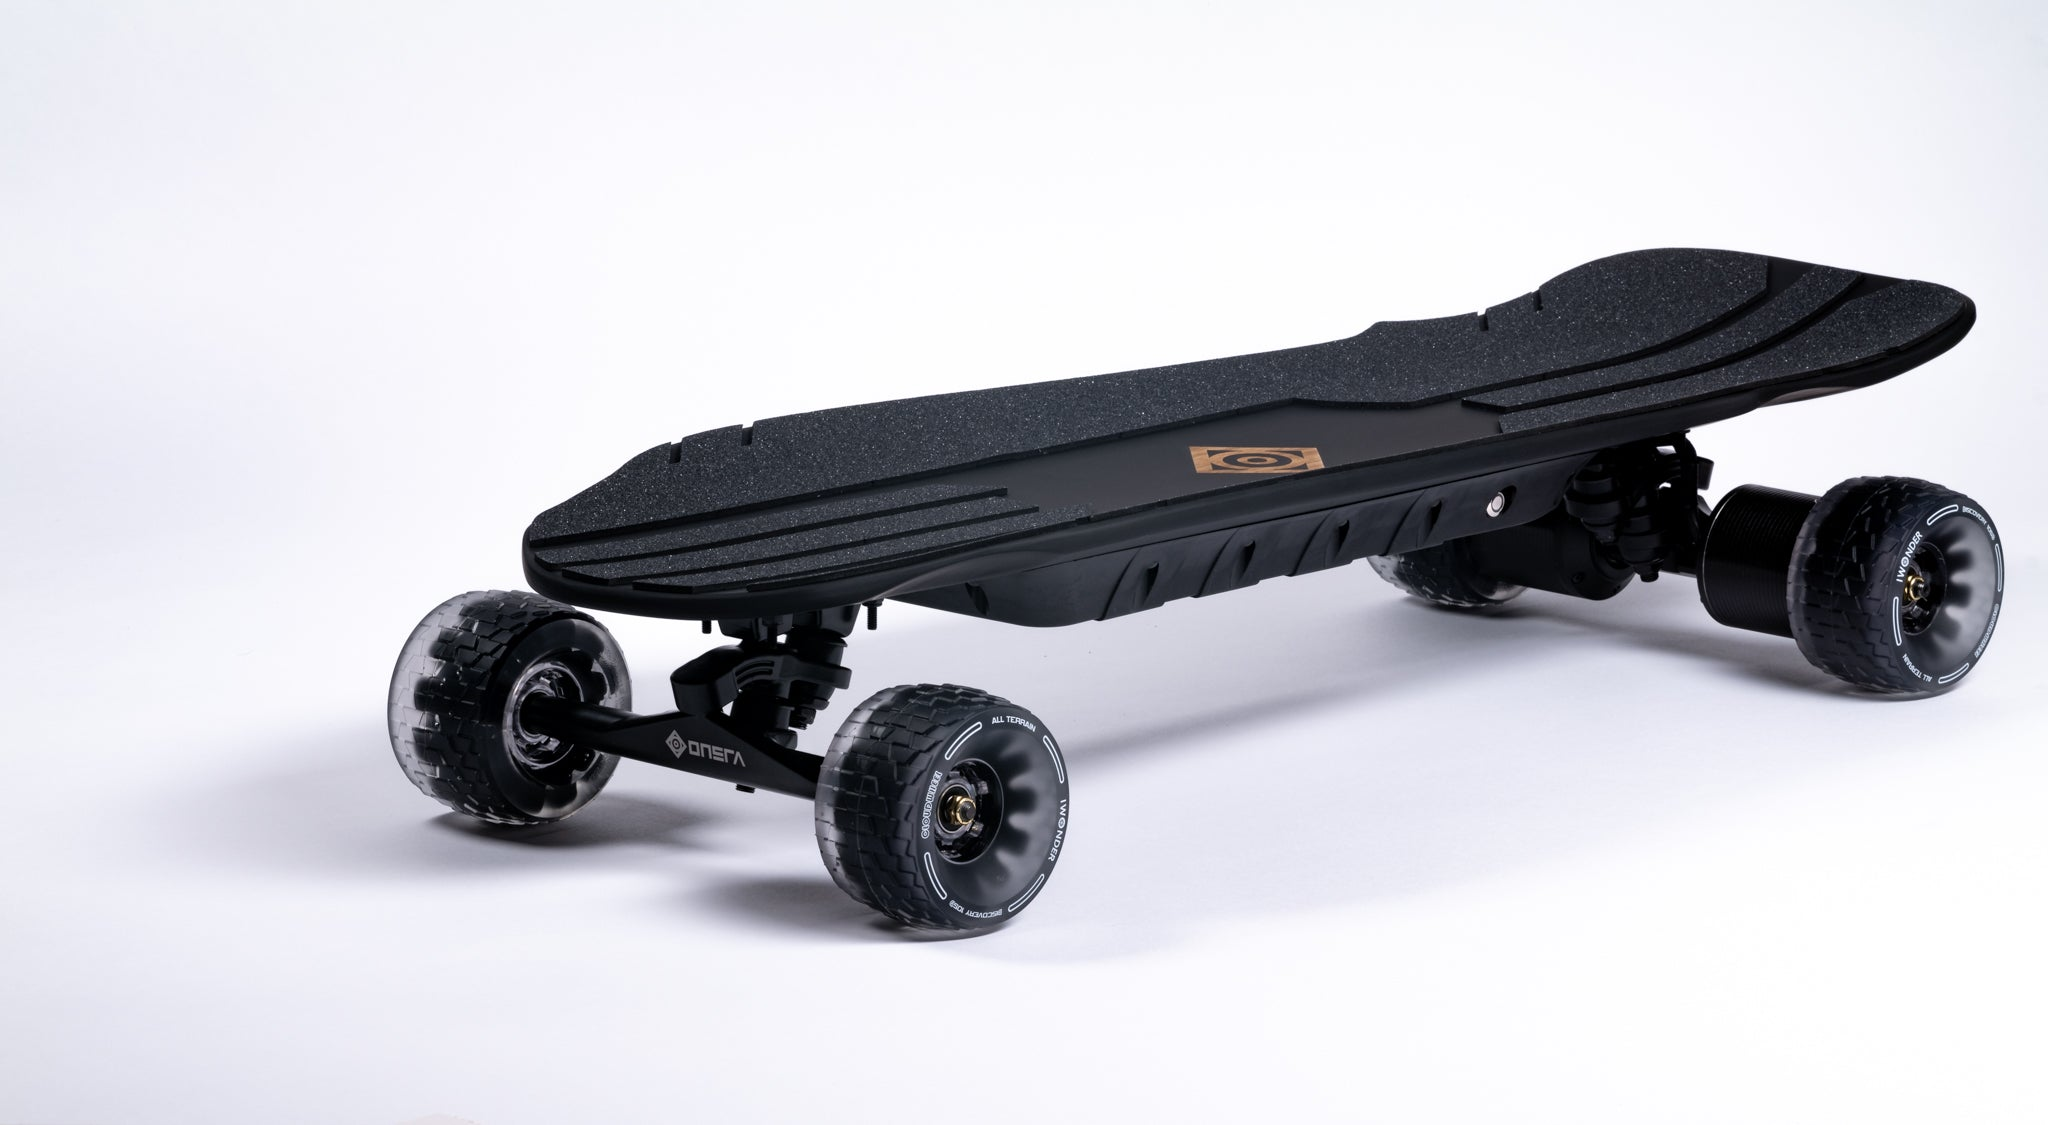 PREORDER APRIL - ONSRA Challenger - Direct Drive Electric Skateboard